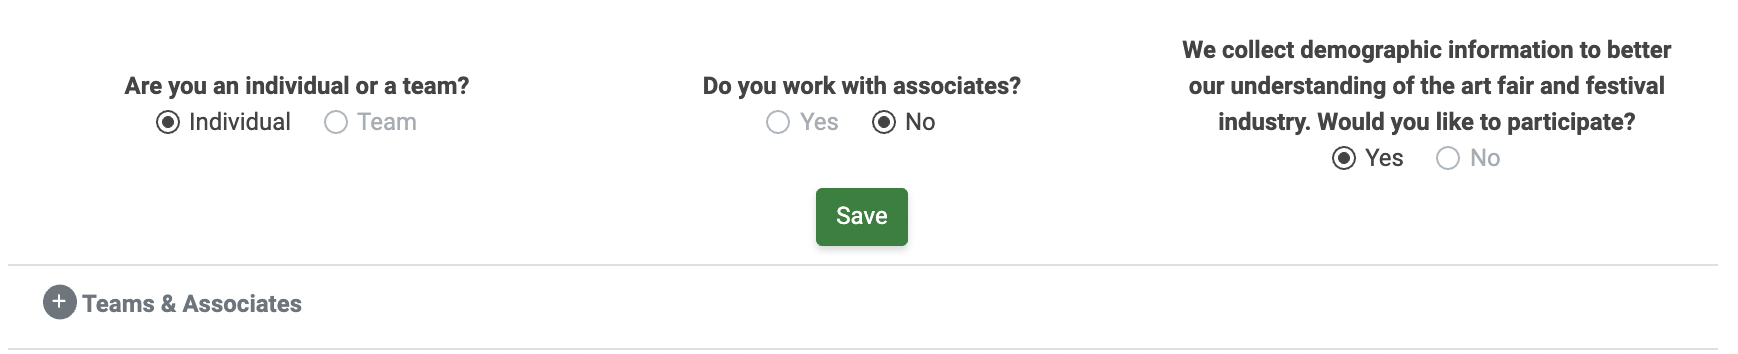 """An image of the last section of the Contact Information section. """"Are you an individual or team?"""" is set to """"Individual."""" """"Do you work with associates?"""" is set to """"No."""" and the account is opted in to providing demographic information."""